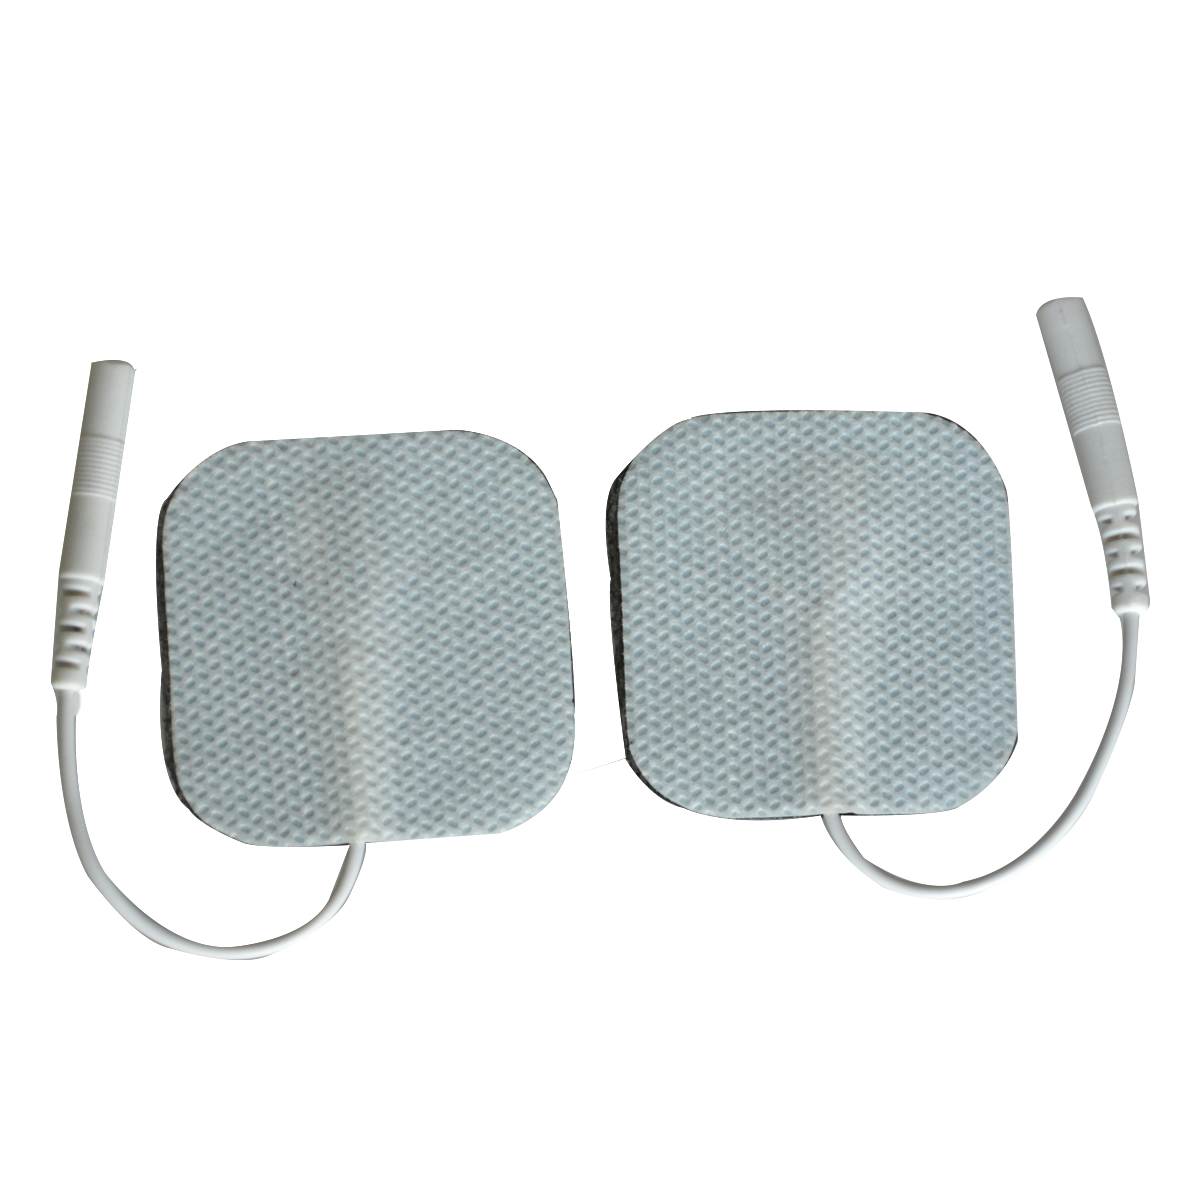 140Pcs/Pack Replacement Reusable Self Adhesive Tens Electrode Pads For Digital Therapy Machine Massager 4x4cm With Wire Cable 140Pcs/Pack Replacement Reusable Self Adhesive Tens Electrode Pads For Digital Therapy Machine Massager 4x4cm With Wire Cable